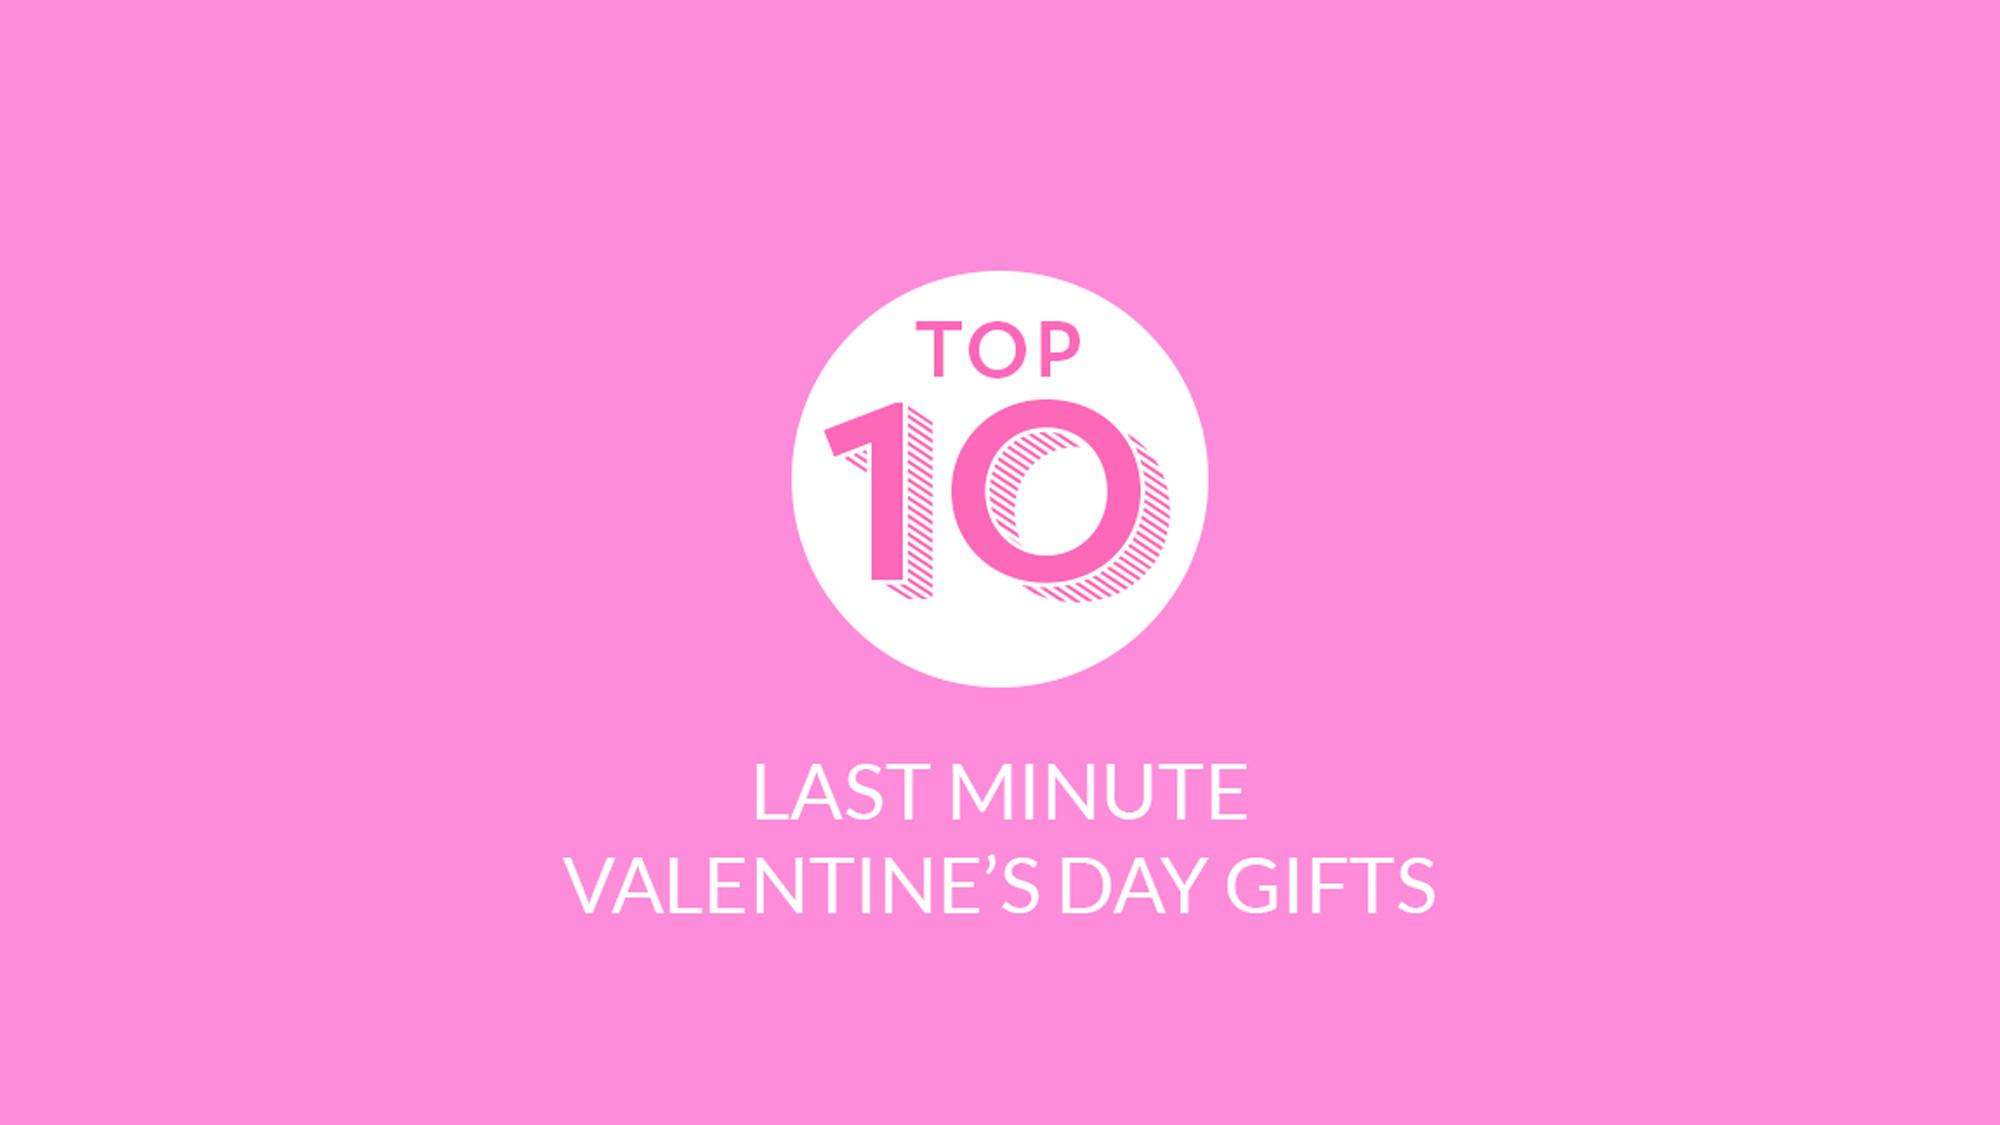 Last Minute Diy Valentine Day Gifts Made Love